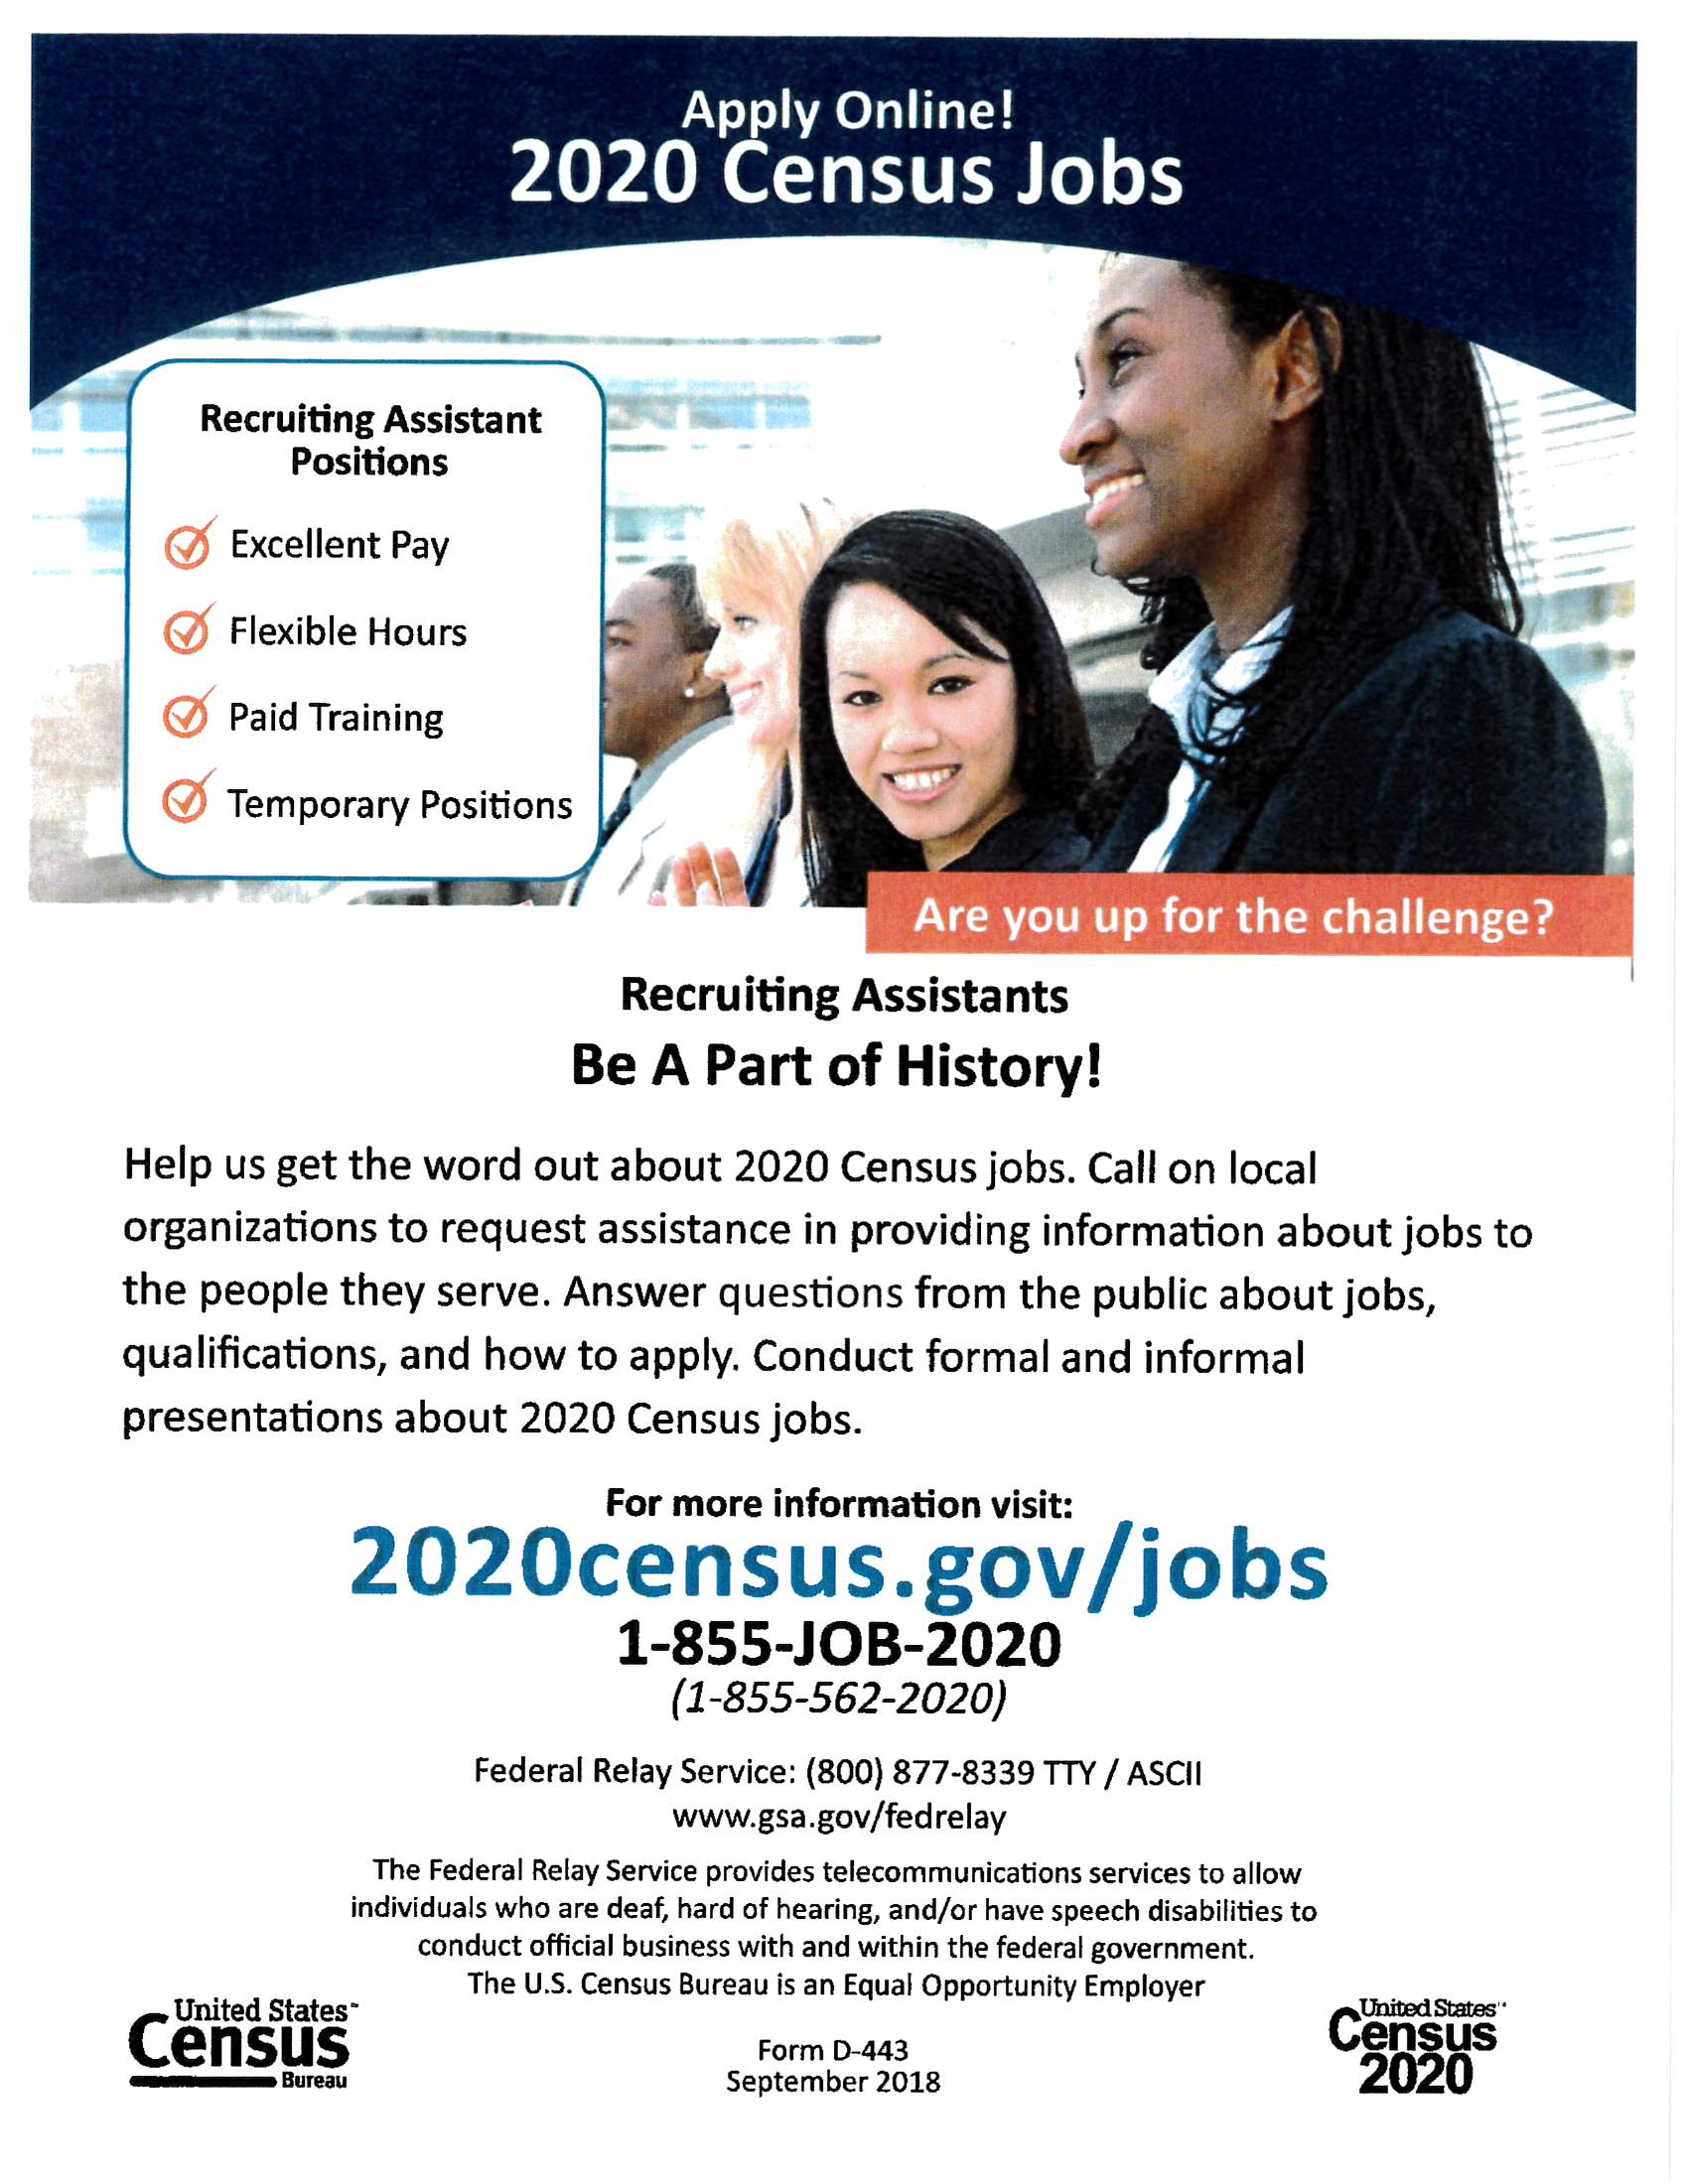 2020 census jobs flyer